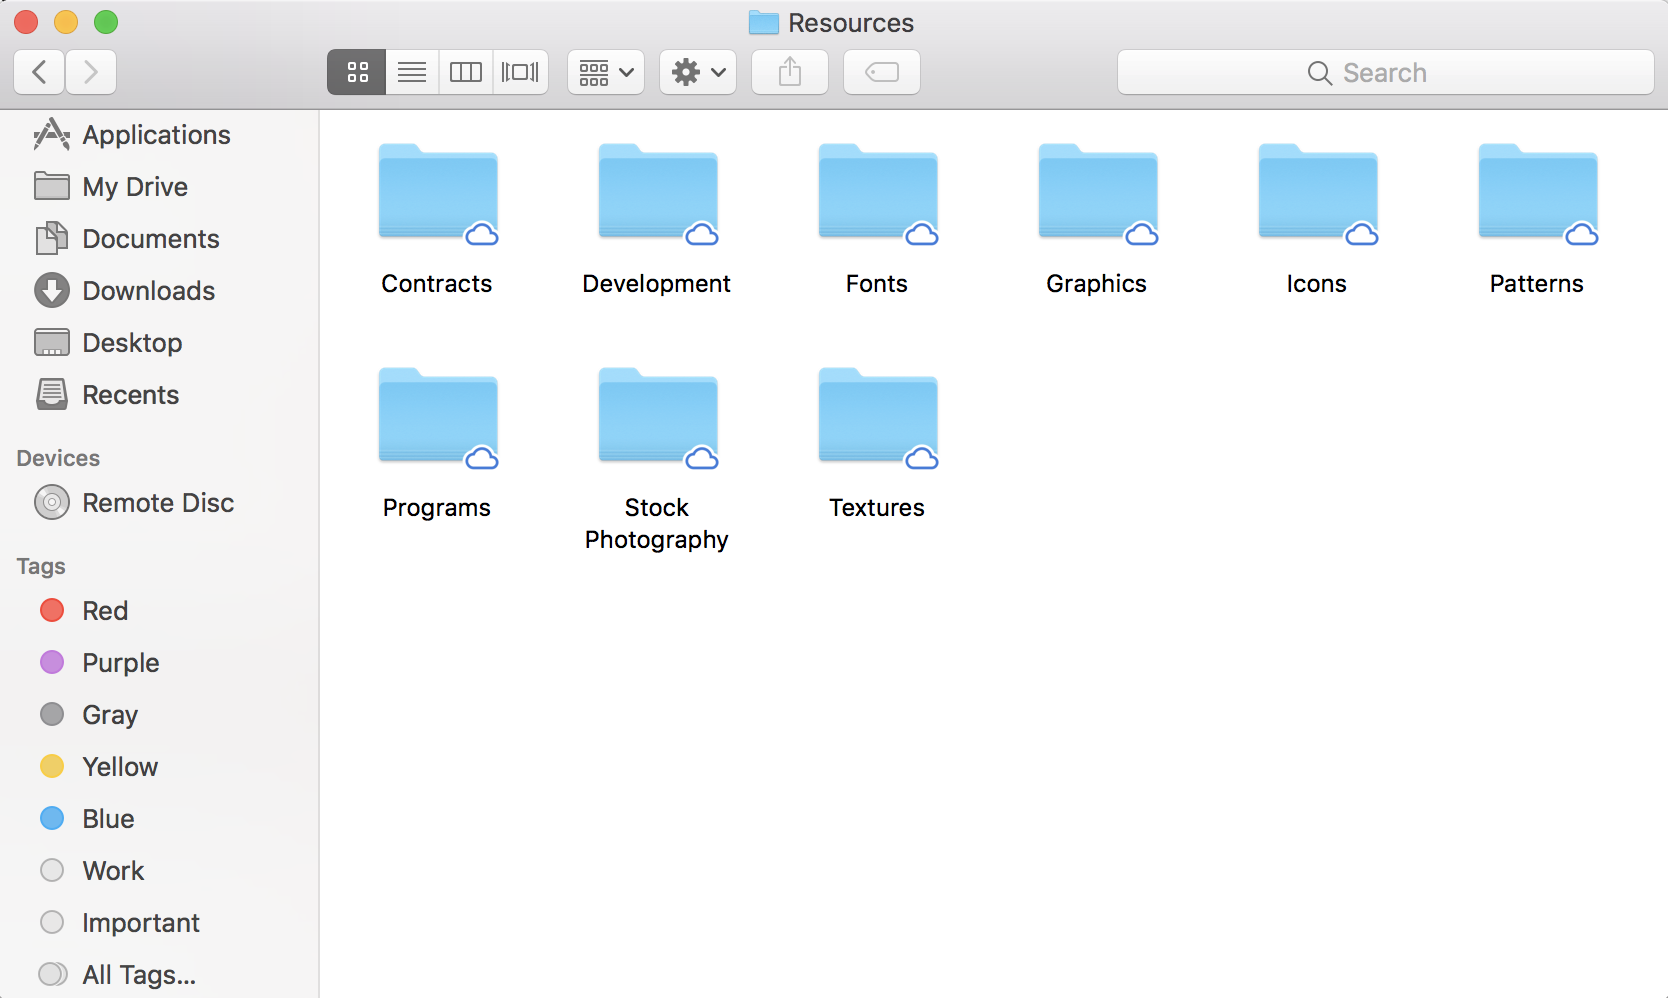 ResourcesFolder.png